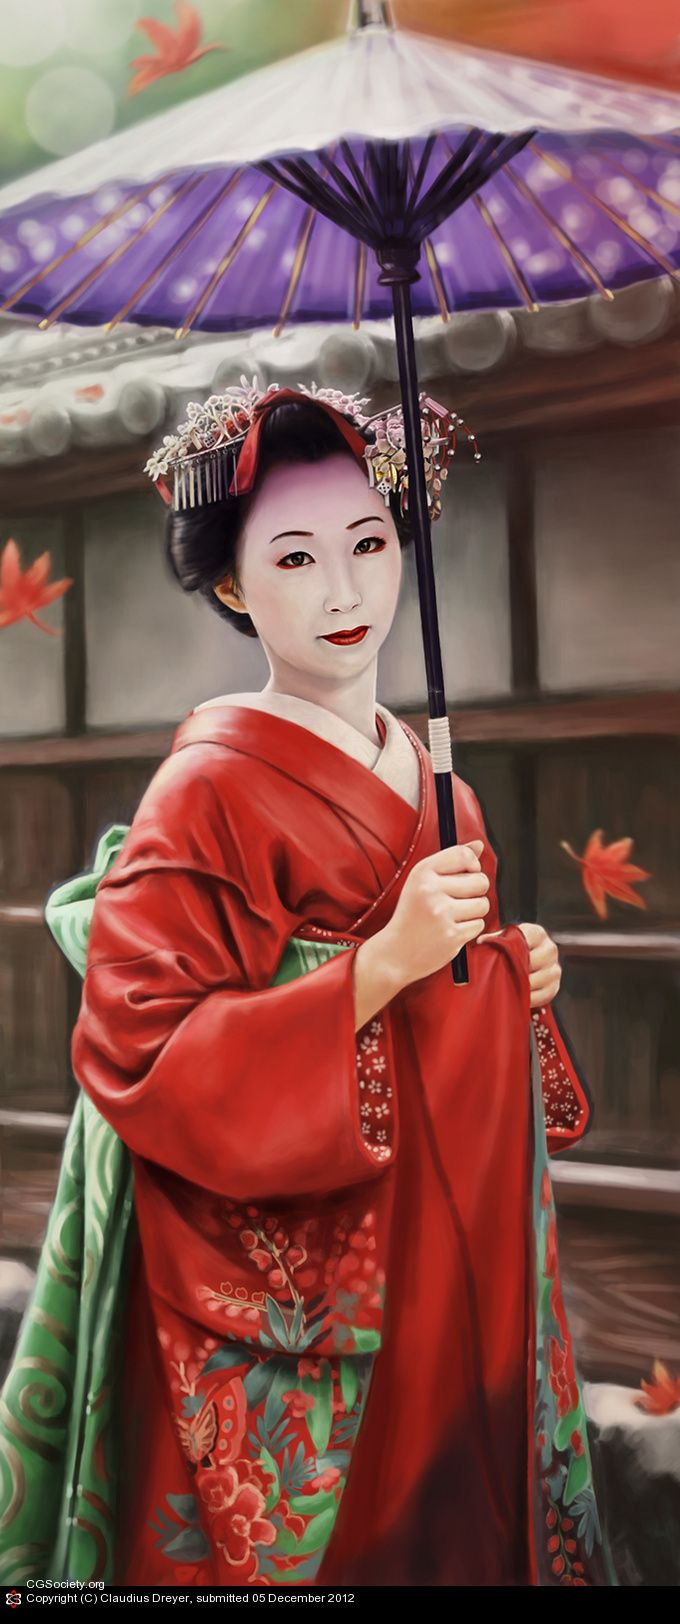 ~Maiko is an apprentice Geiko (not exactly same as geisha) in Kyoto, Western Japan. Their jobs consist of performing songs, dances, and playing the shamisen or Koto (Traditional Japanese musical instruments) for visitors during feasts | House of Beccaria